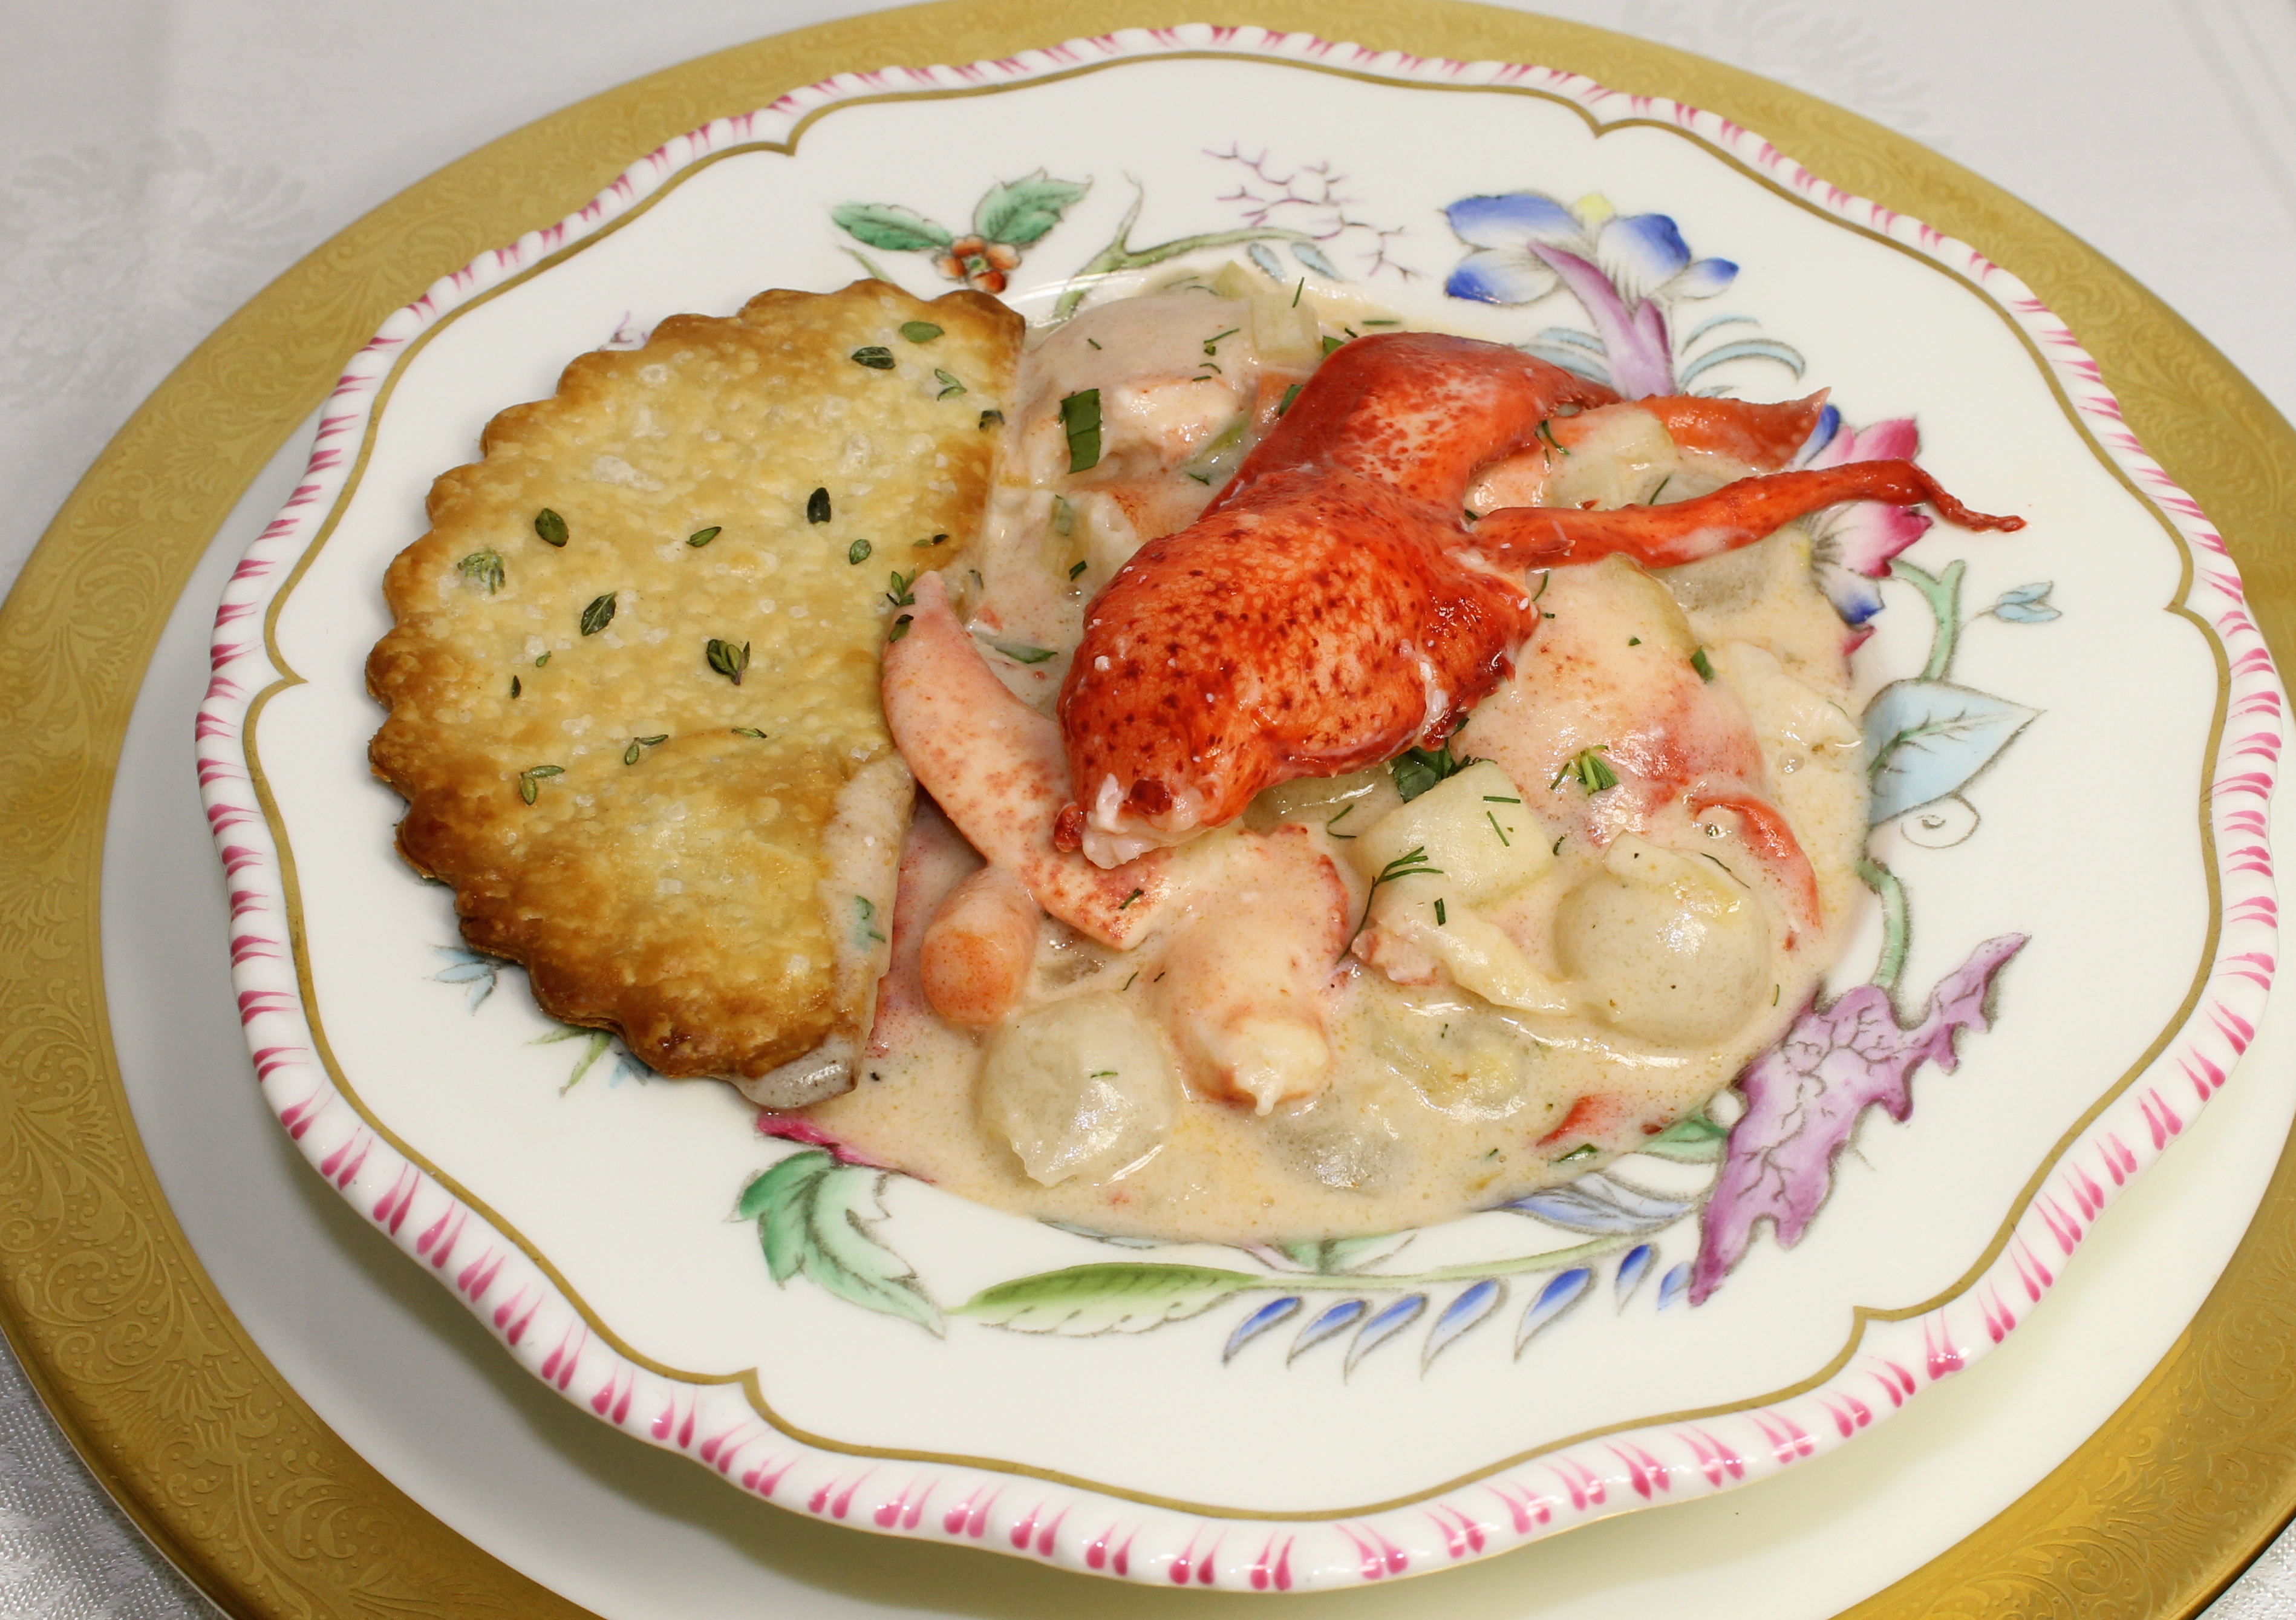 The New Year's Lobster Pot Pie | Back Road Journal